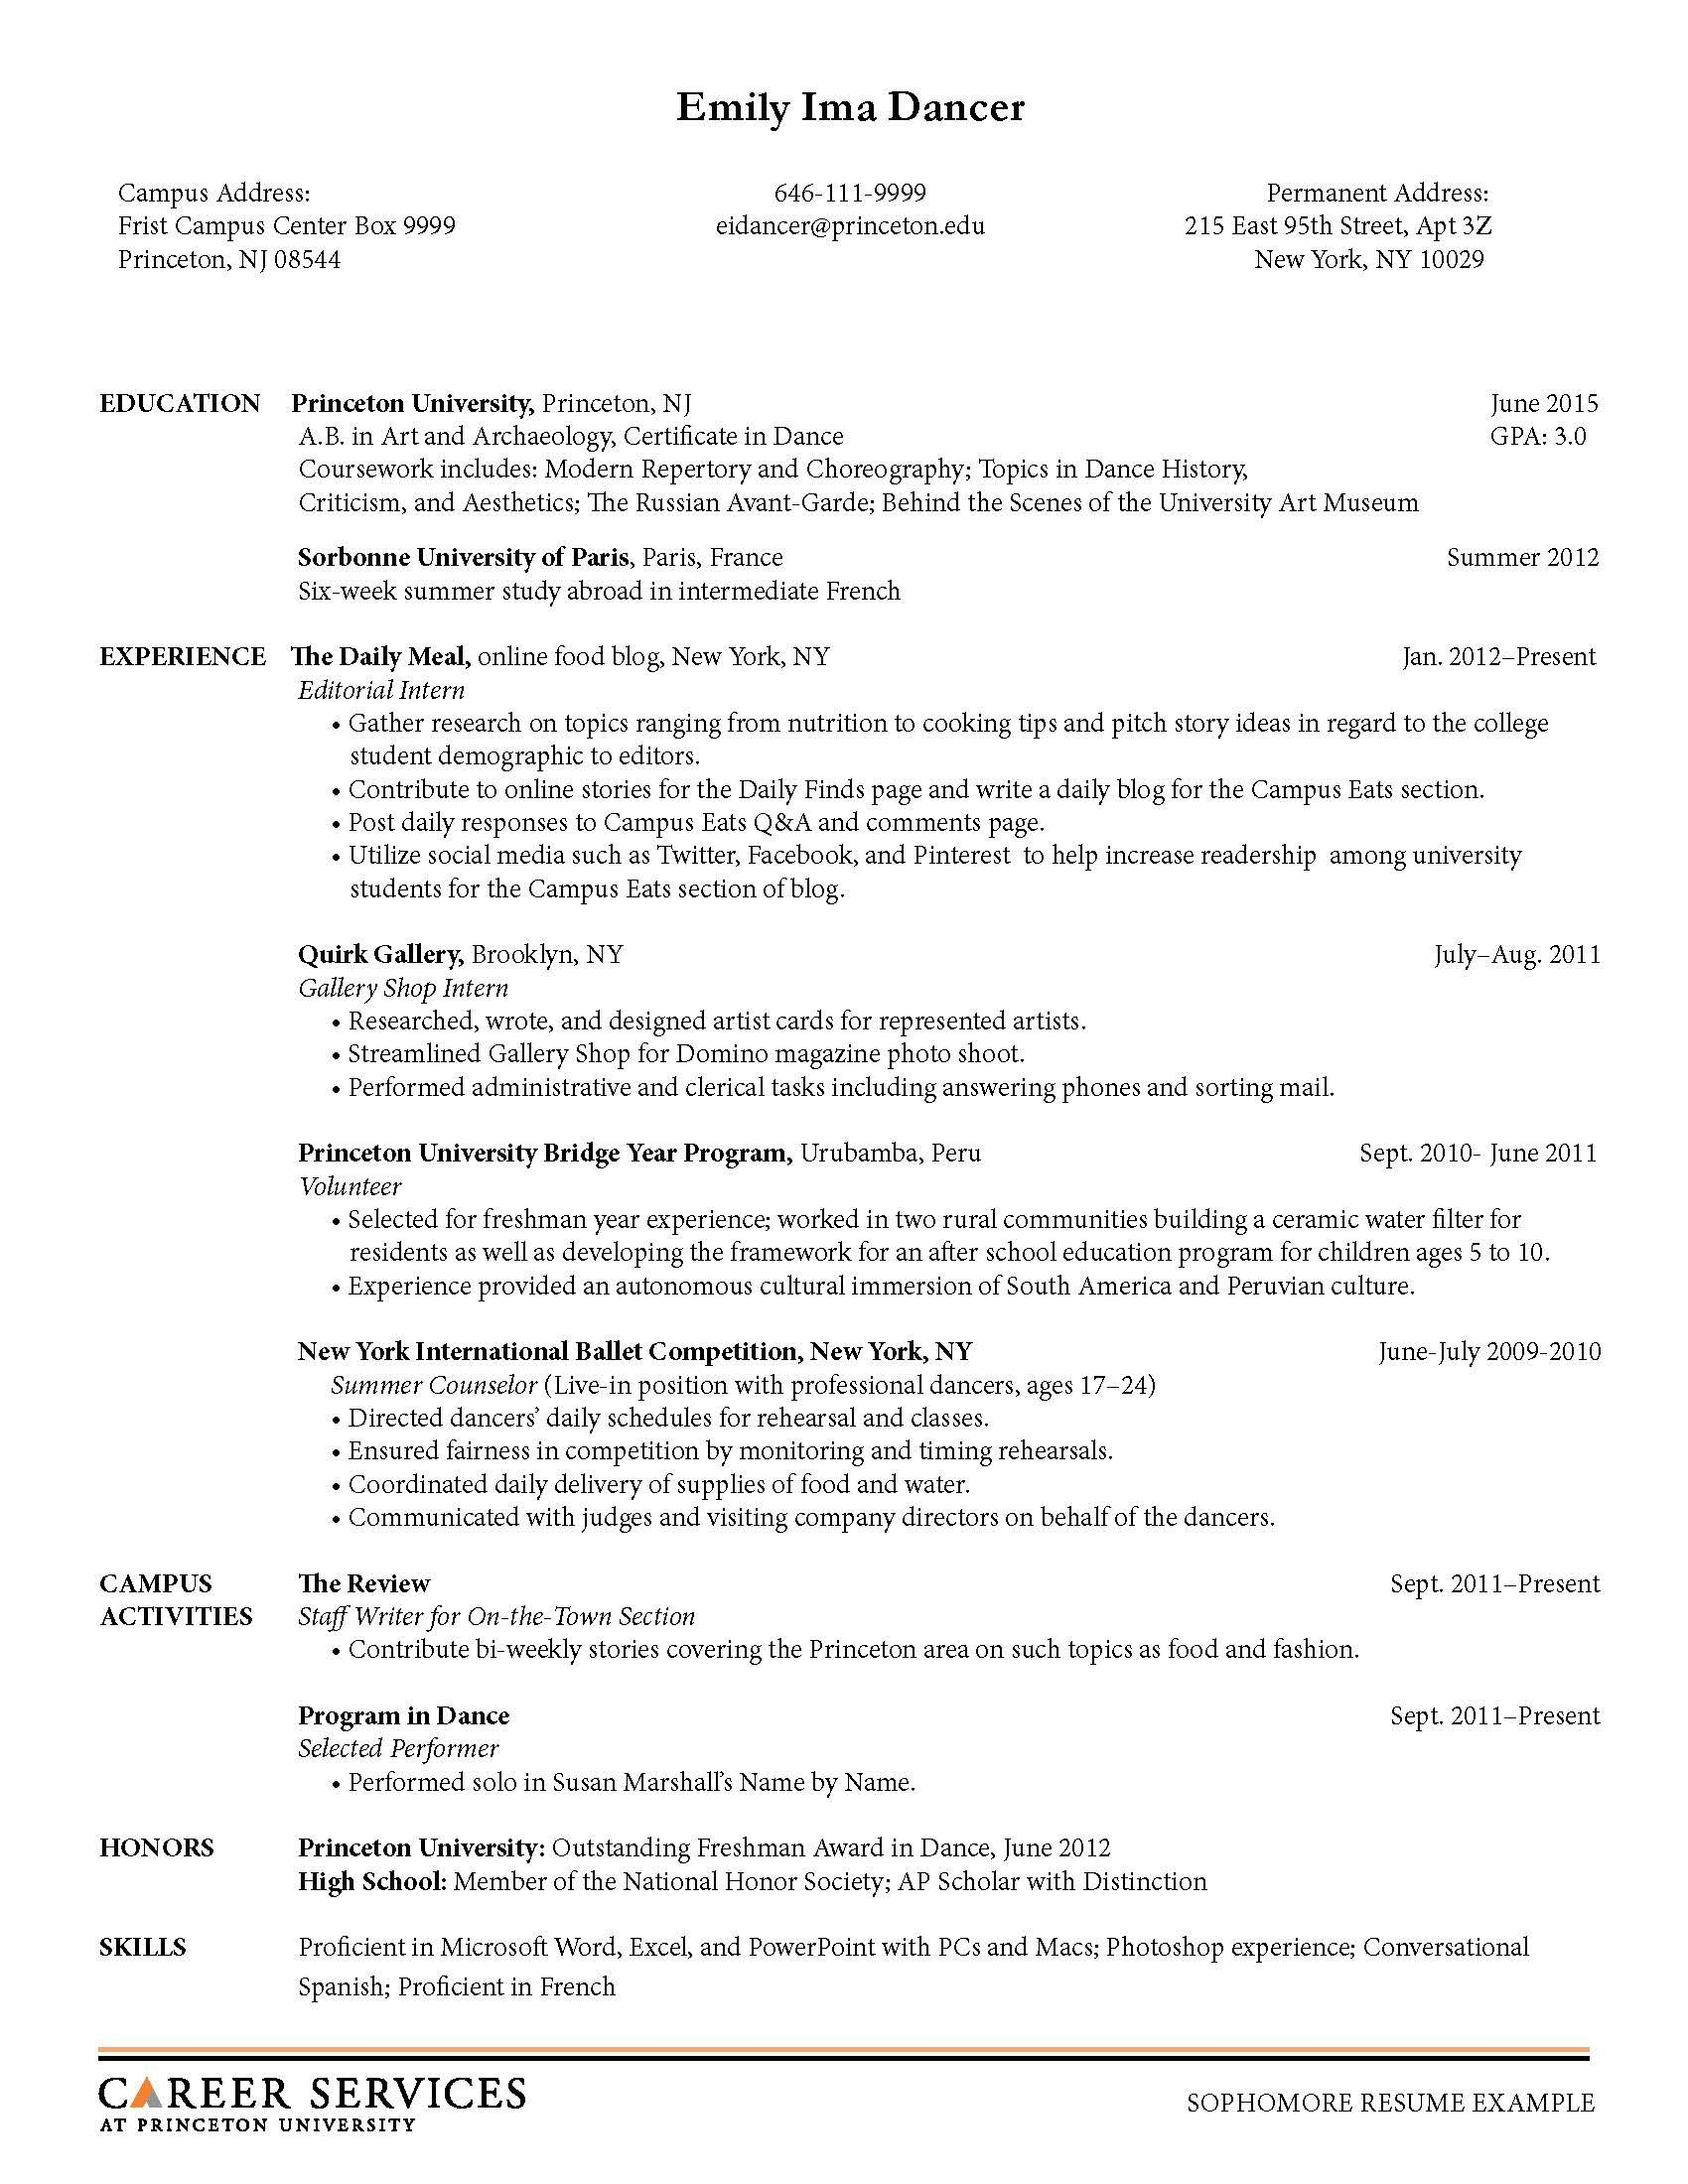 Admissions Counselor Resume Amusing Psychology Graduate School Resume  Httpwww.resumecareer .